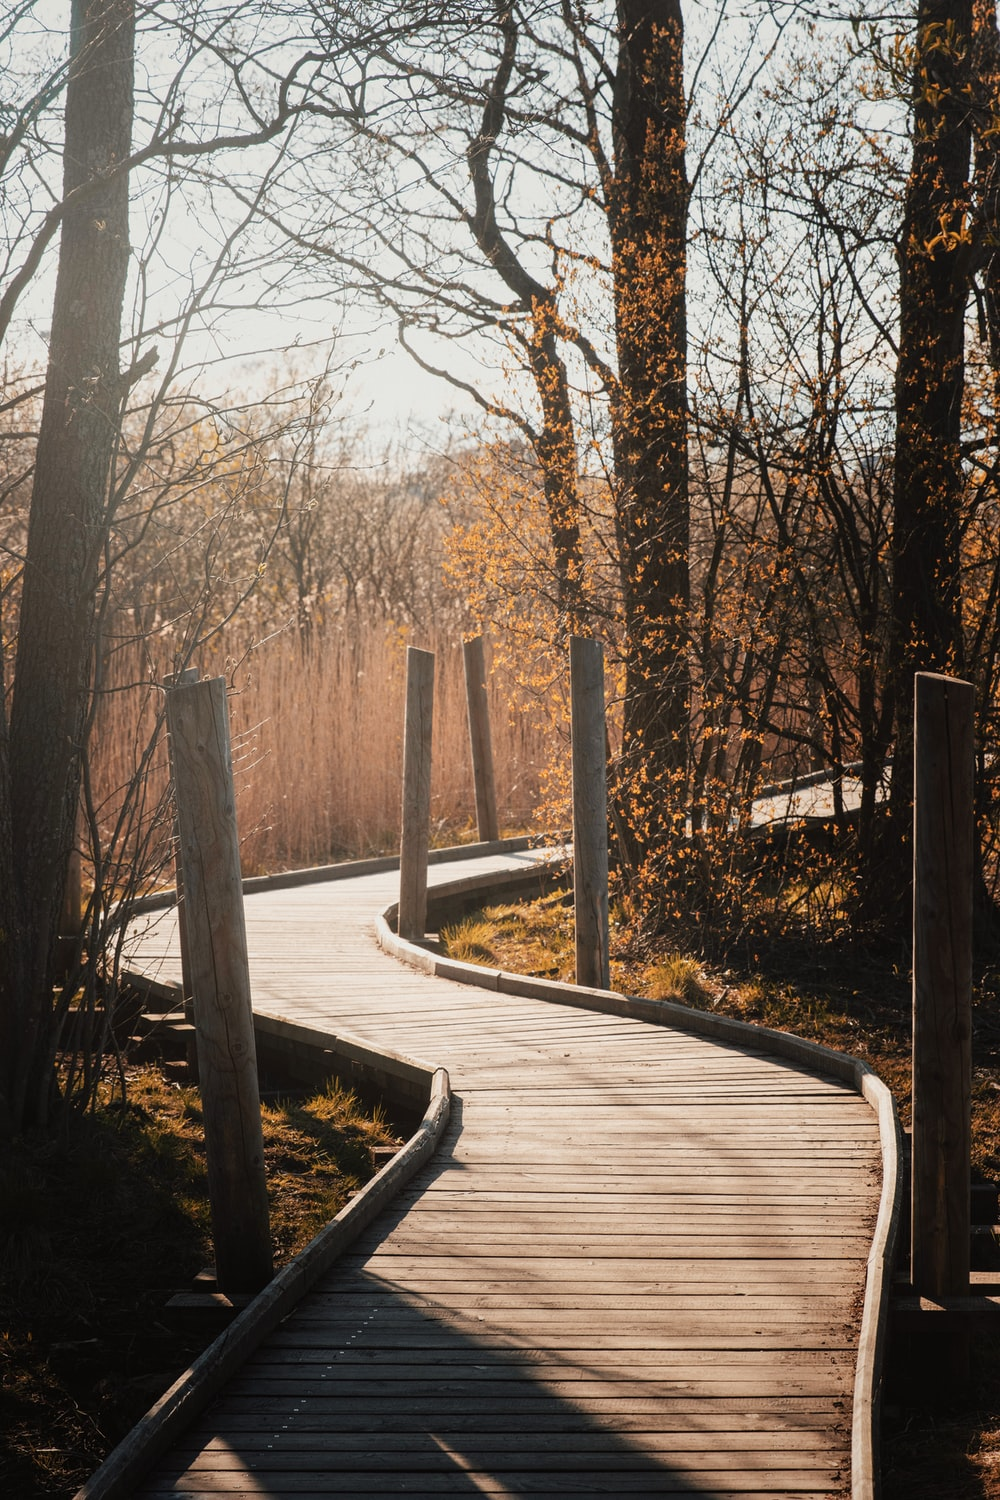 brown wooden pathway in between bare trees during daytime